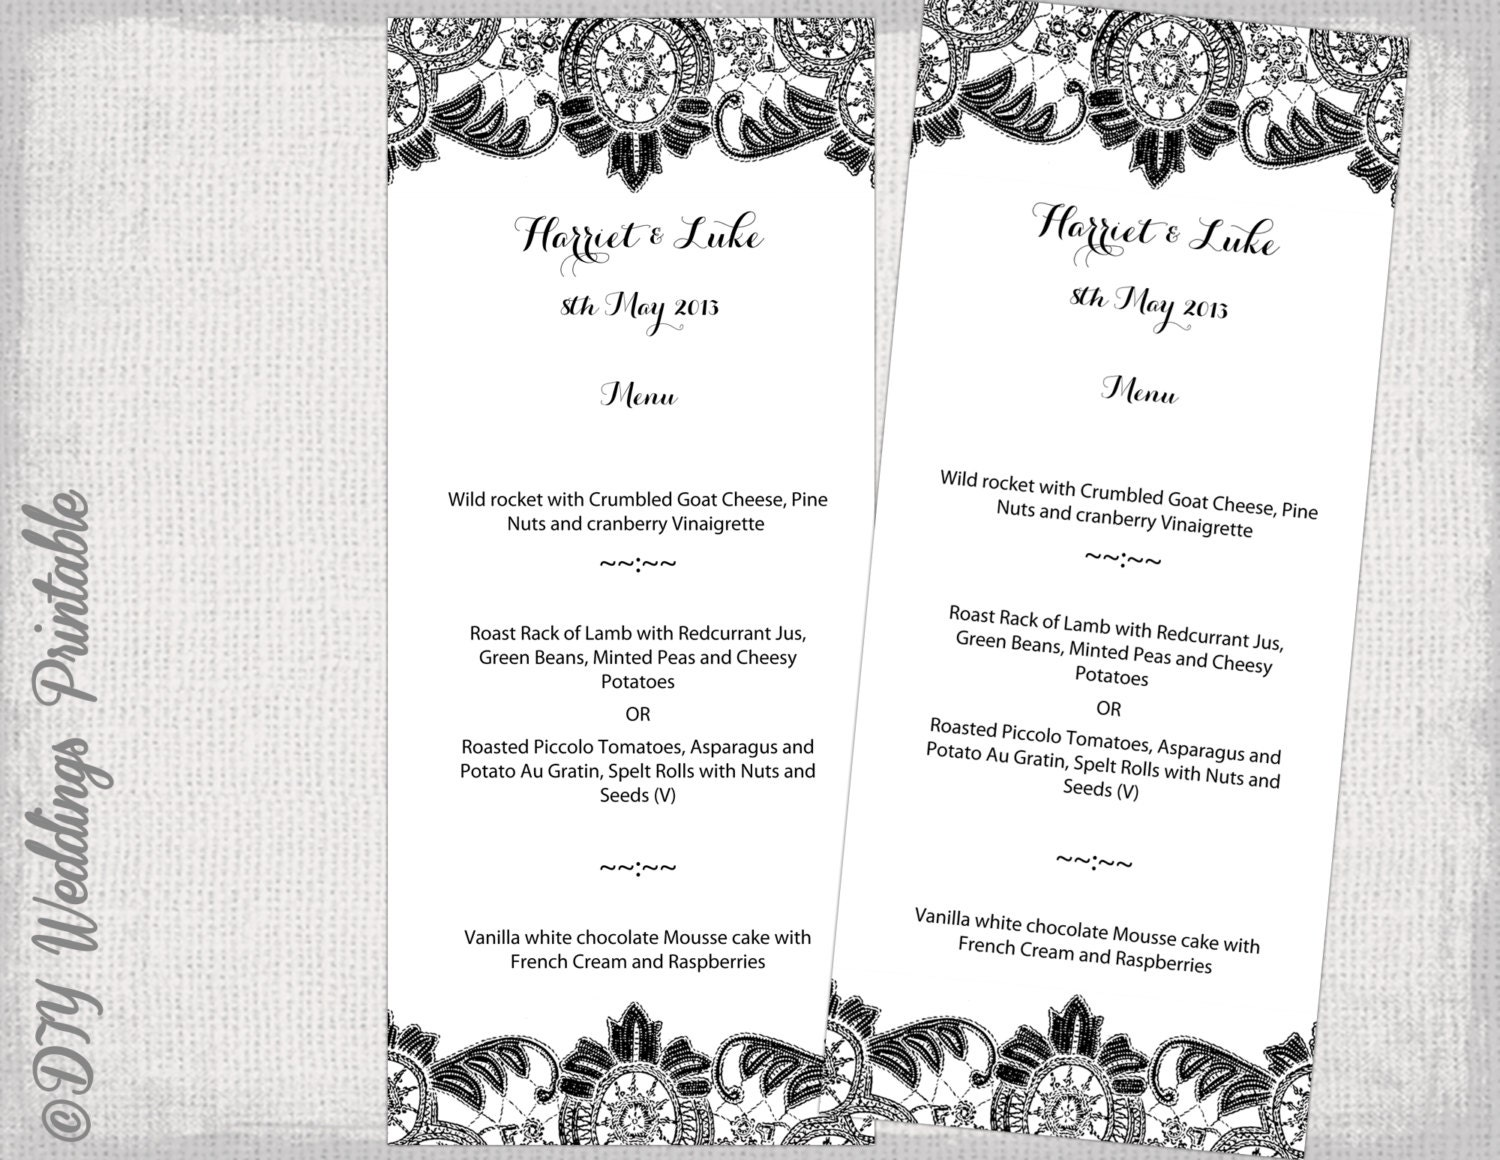 Free Wedding Menu Templates For Microsoft Word. Free Wedding Templates  Programs Response Cards And More .  Free Menu Templates Microsoft Word